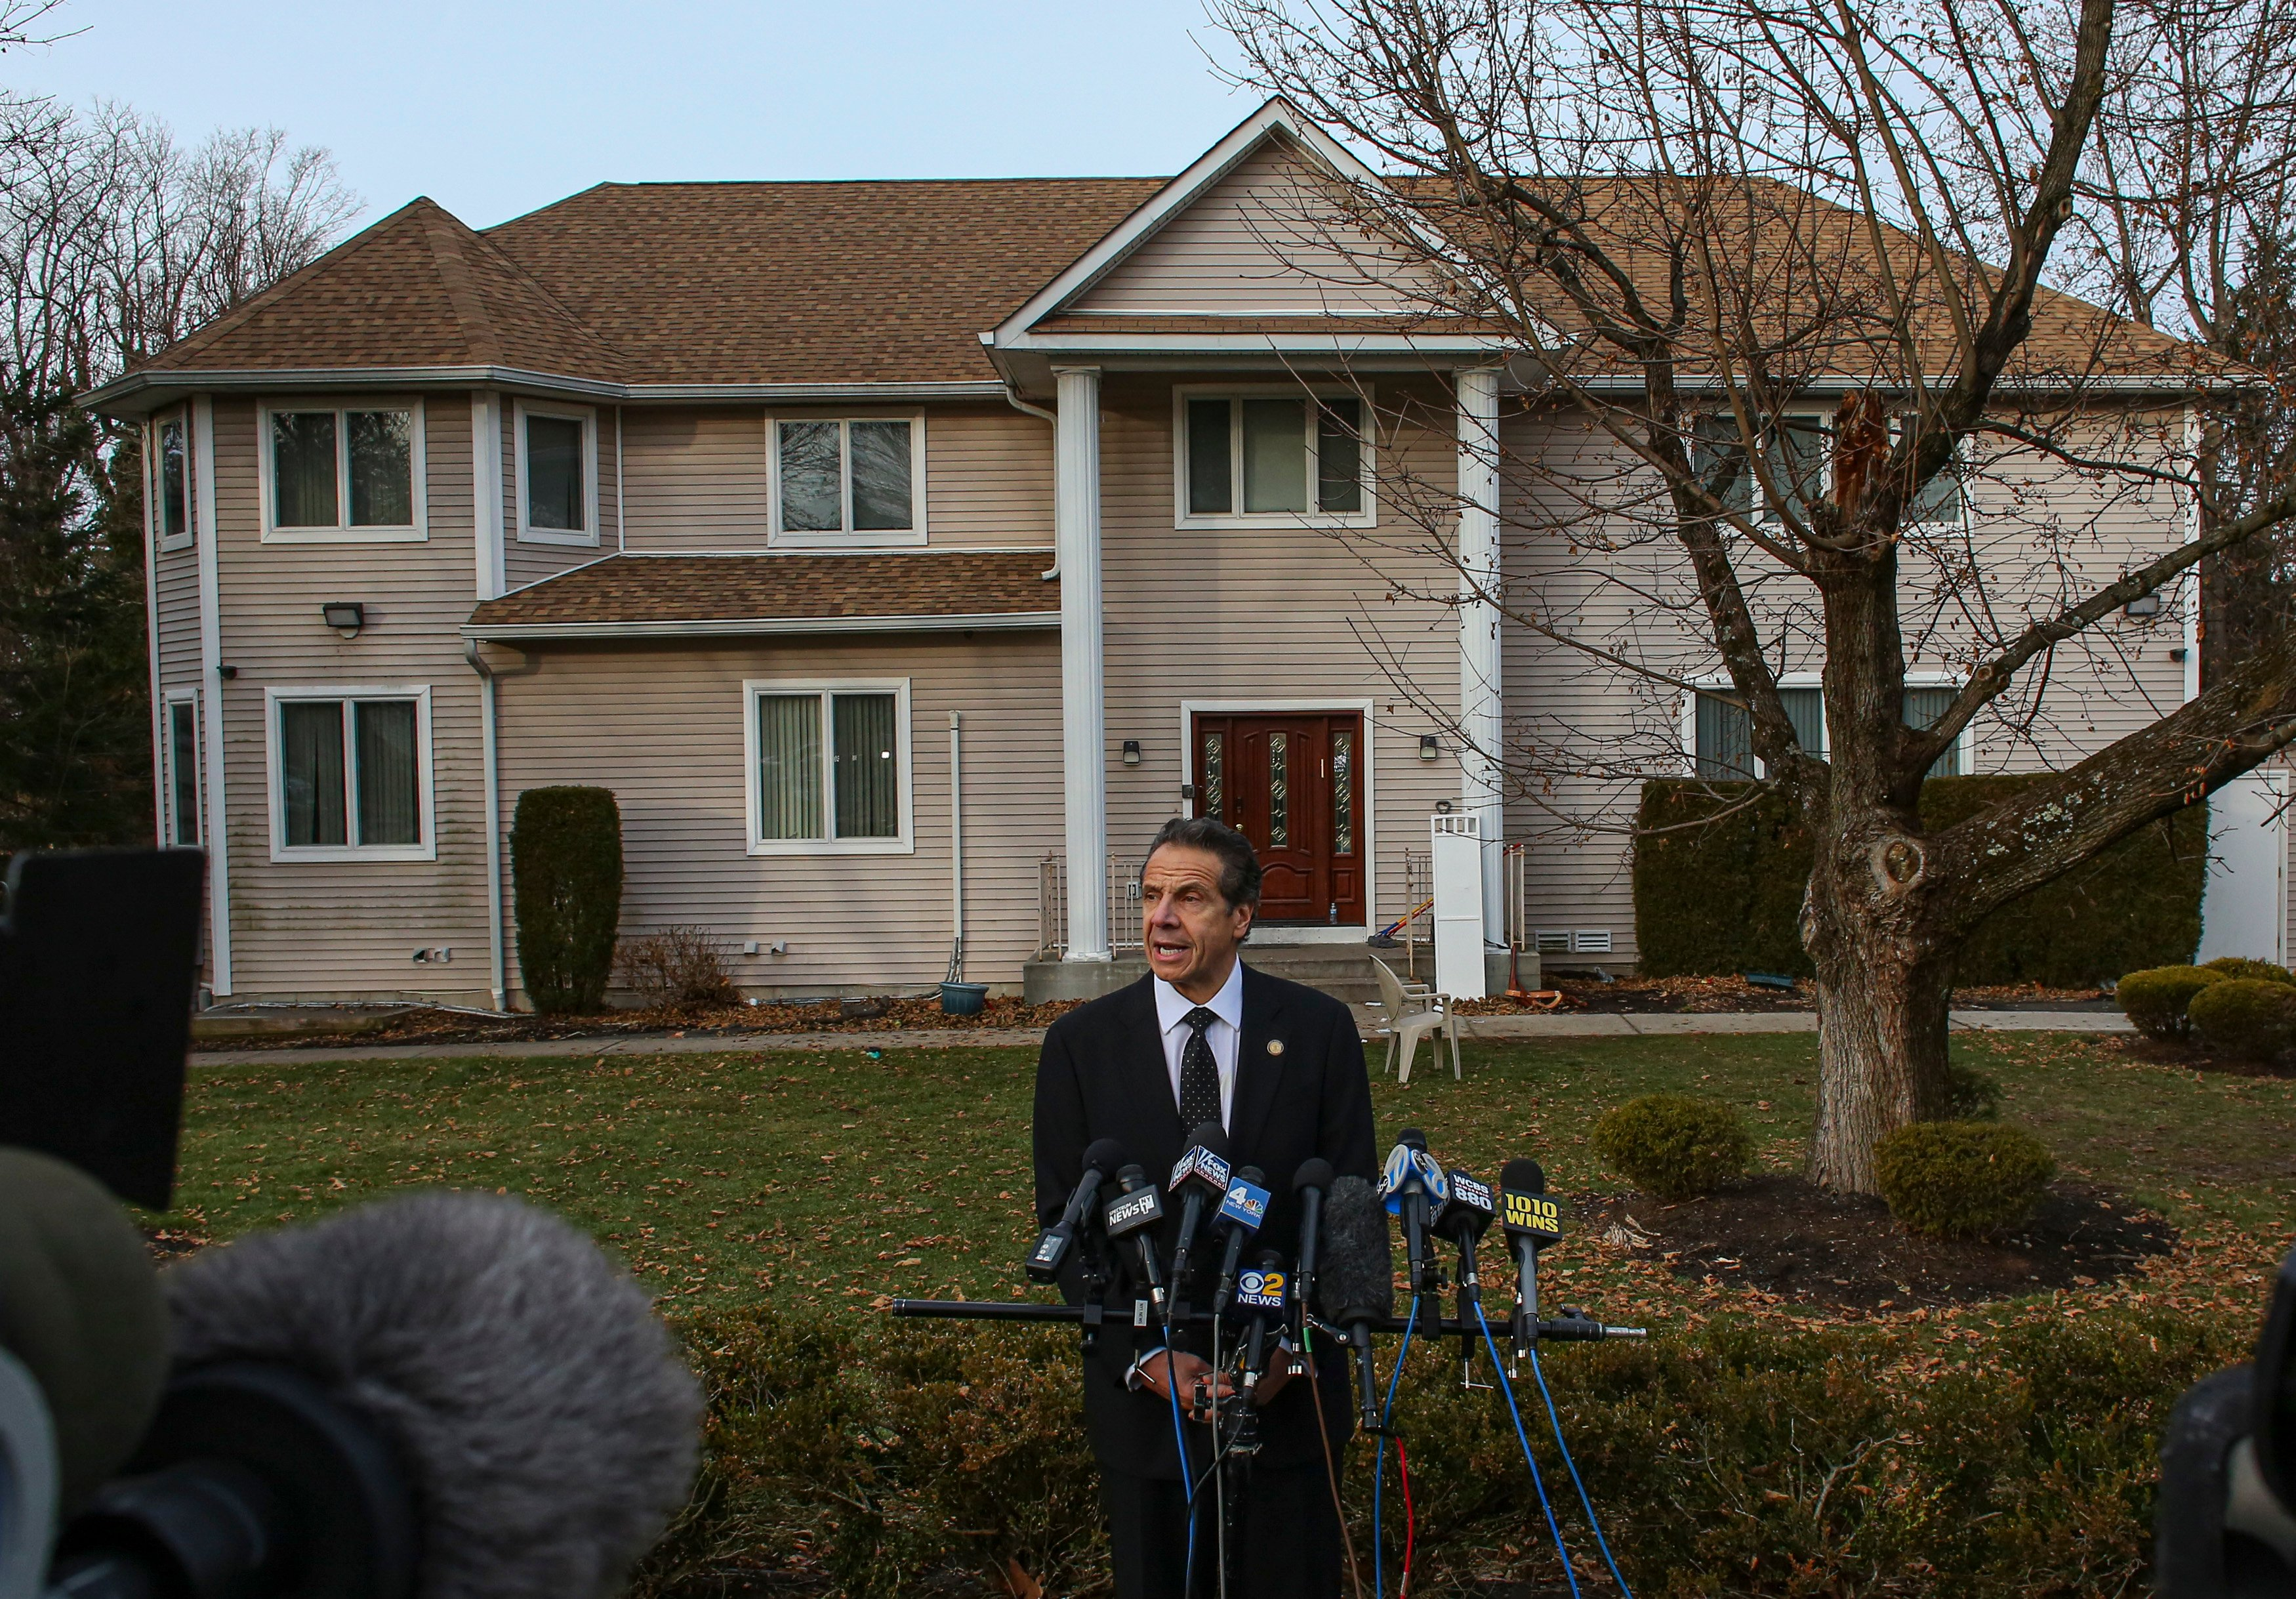 New York Governor Andrew Cuomo speaks to the media outside the home of rabbi Chaim Rottenbergin Monsey, in New York on December 29, 2019 after a machete attack that took place earlier outside the rabbi's home during the Jewish festival of Hanukkah in Monsey, New York. - An intruder stabbed and wounded five people at a rabbi's house in New York during a gathering to celebrate the Jewish festival of Hanukkah late on December 28, 2019, officials and media reports said. Local police departments, speaking to AFP, declined to give the number of people injured, but a suspect has been taken into custody and a vehicle safeguarded, an NYPD spokesman said. (Photo by KENA BETANCUR/AFP via Getty Images)